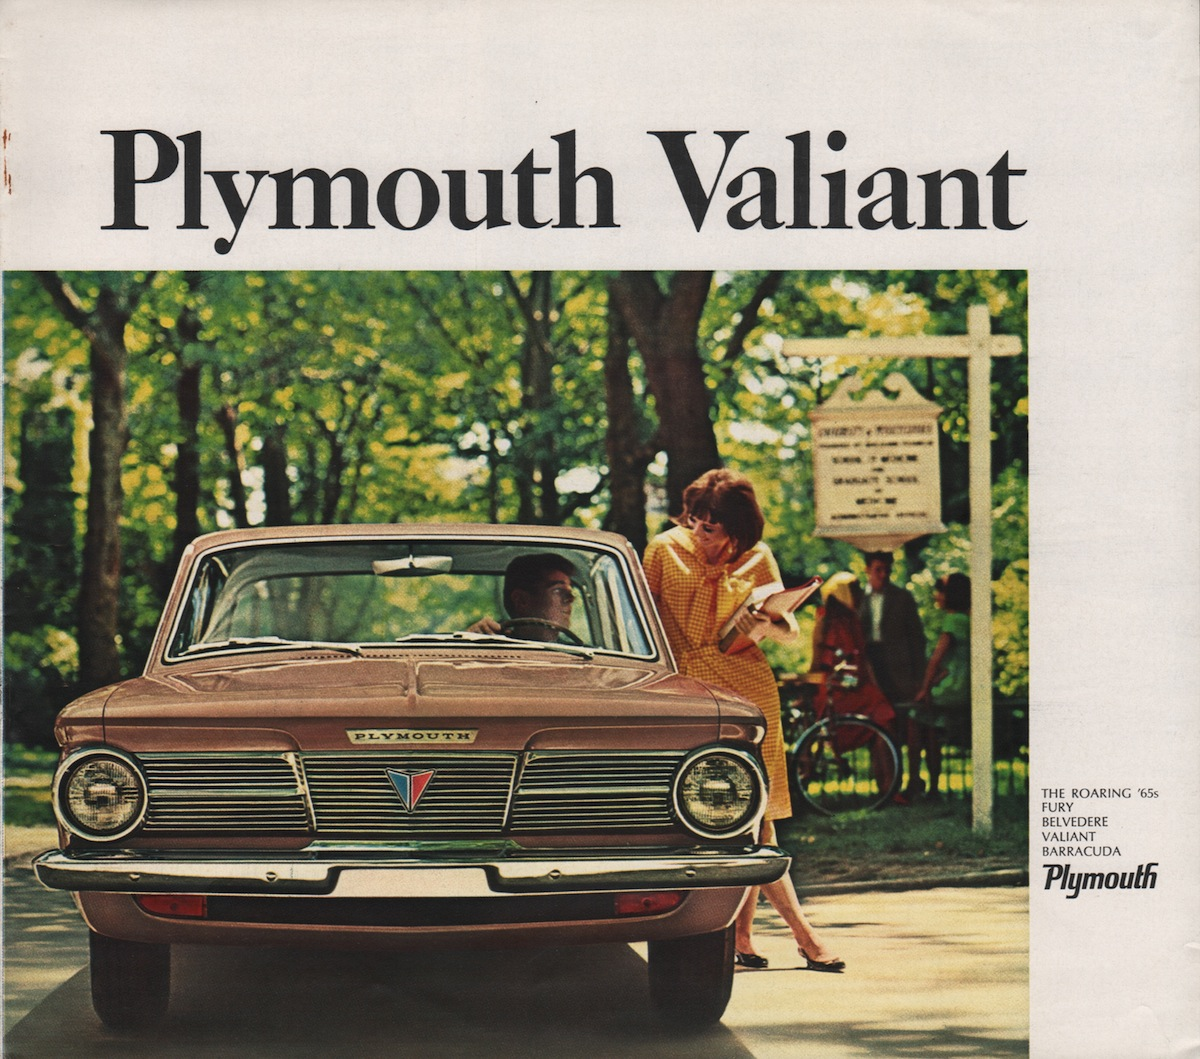 ... emblems, and designs are trademarks and/or service marks of Chrysler